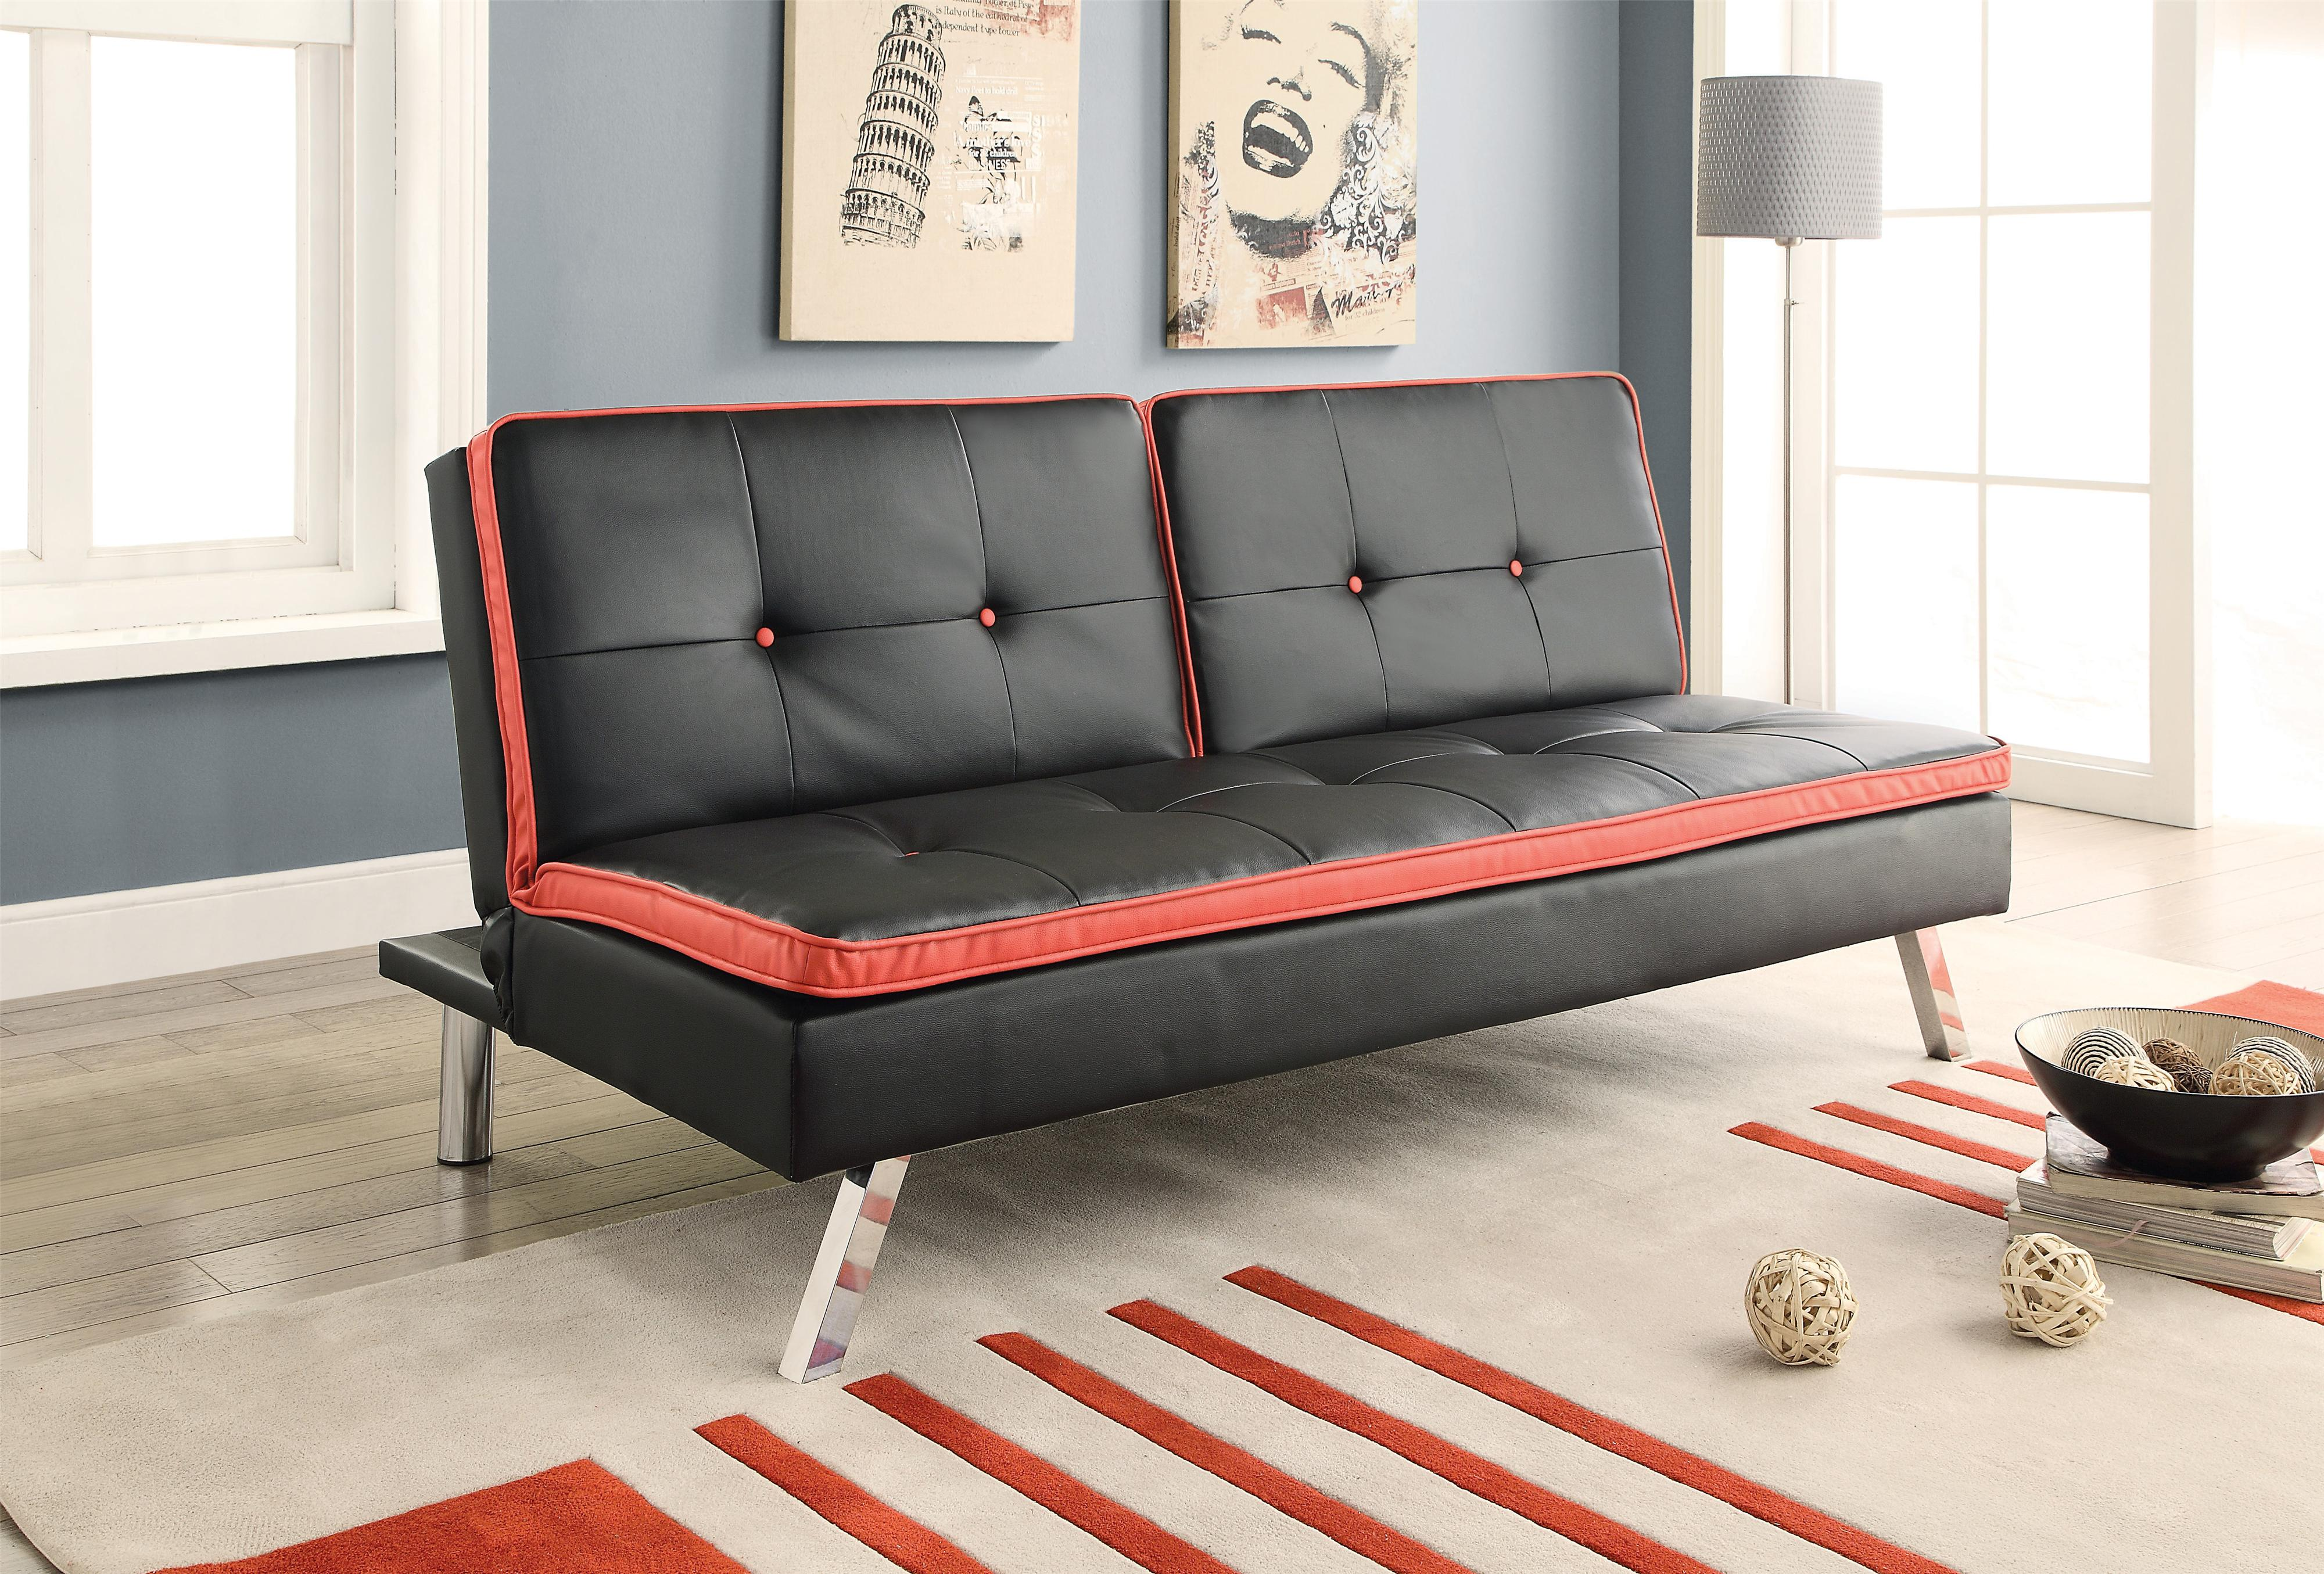 Sofa Beds and Futons Sofa Bed in Black Leatherette with Red Accents